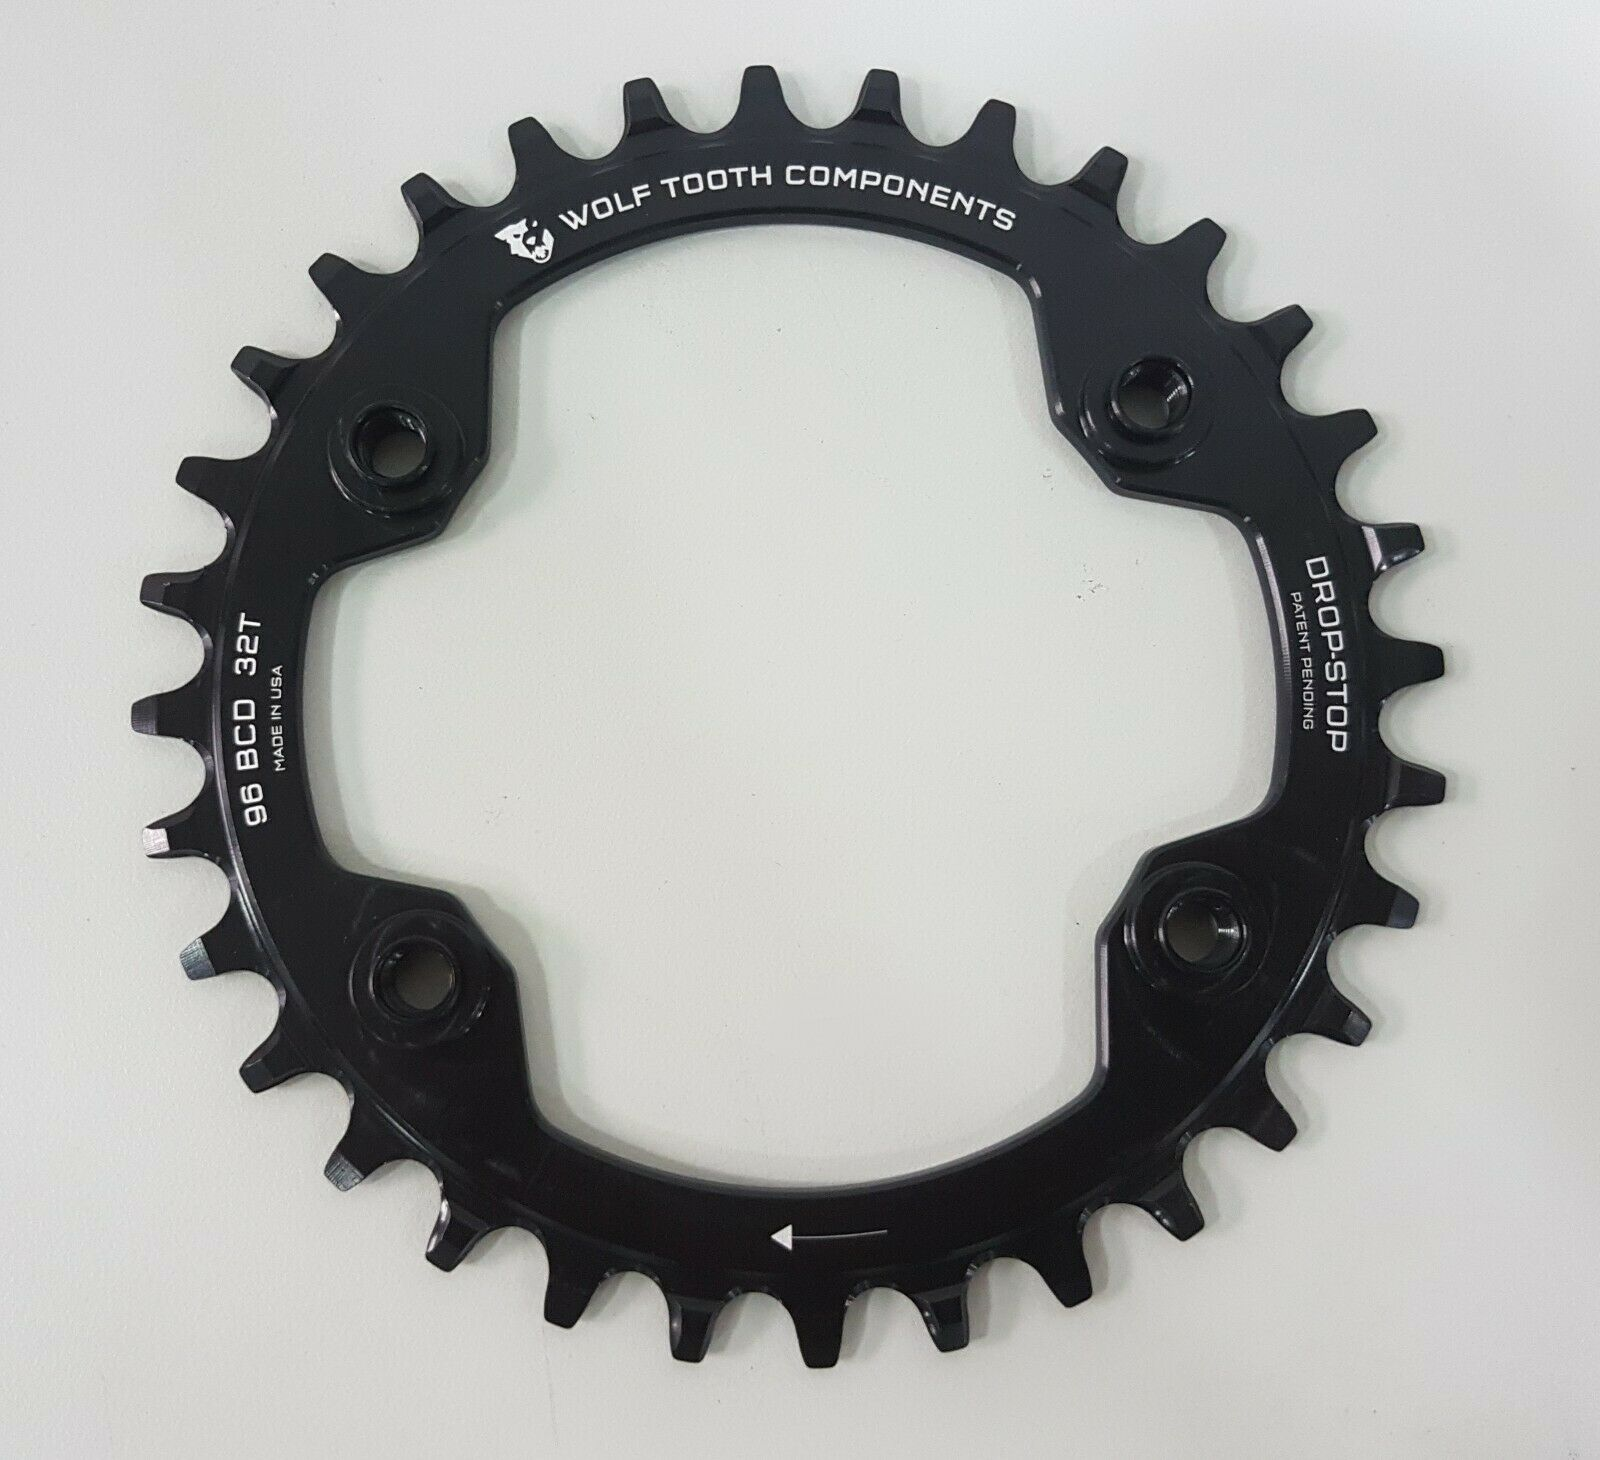 Wolftooth BCD 96mm x 4 Bolts 32T DropStop Chainrings For Shiuomoo XTR M90009020